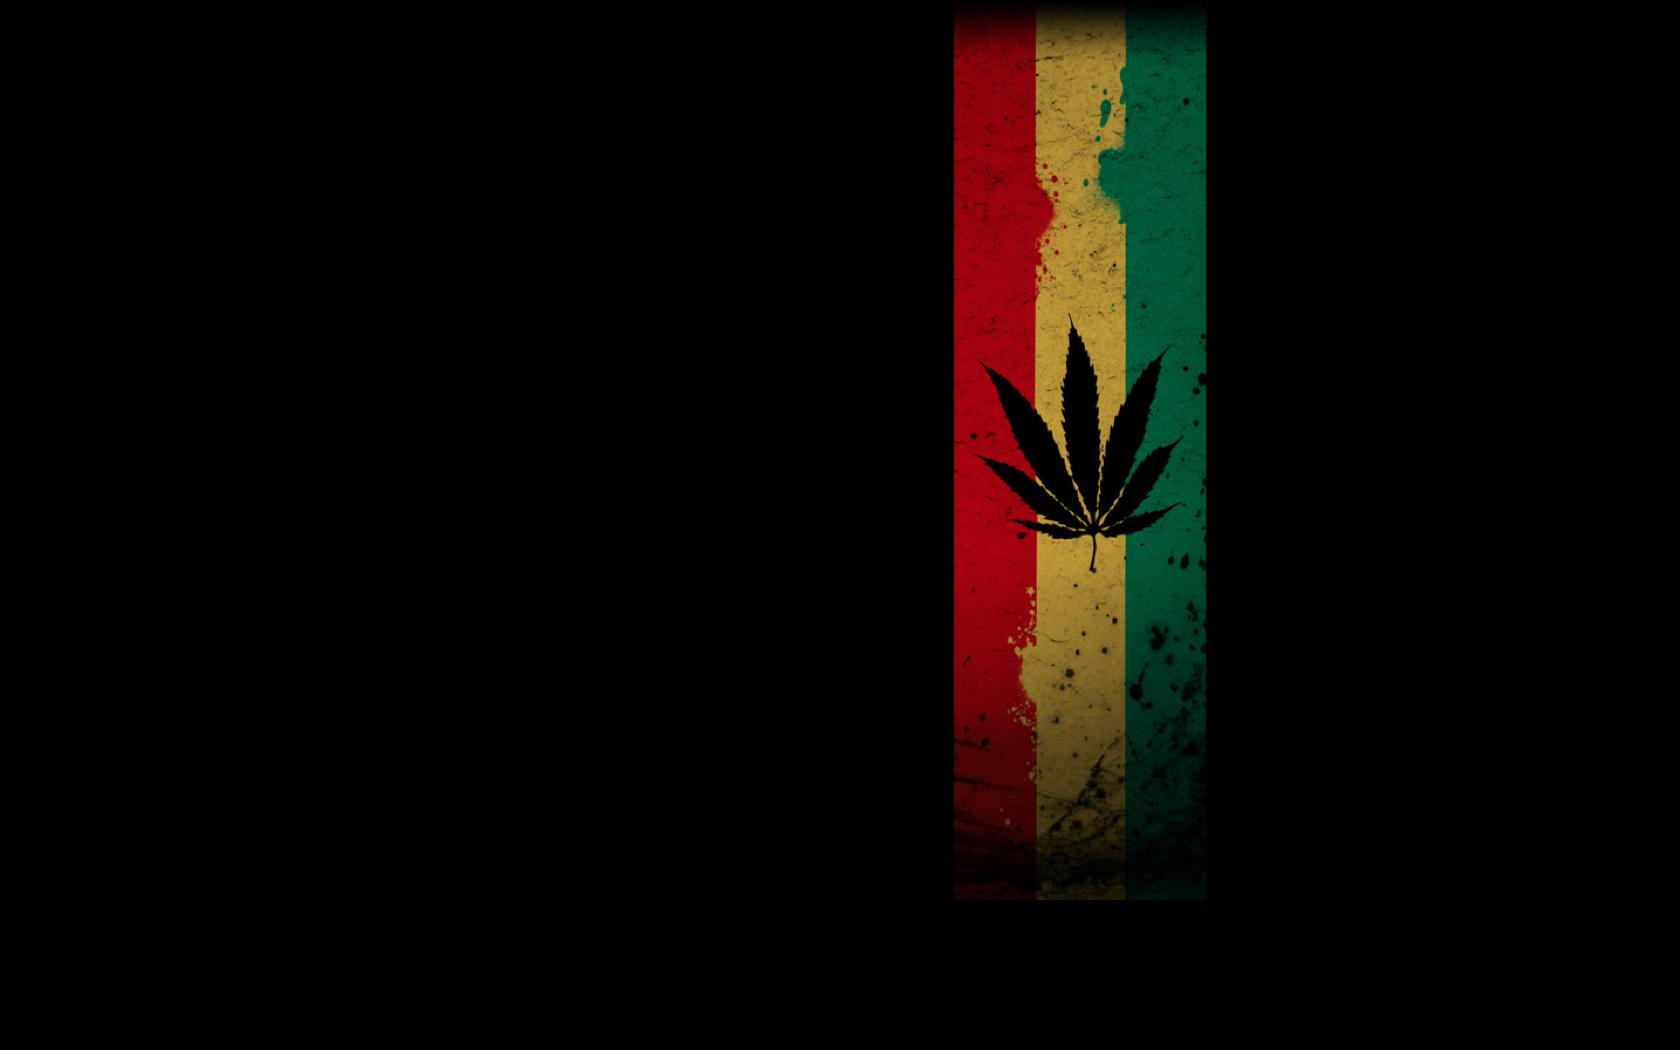 HD Wallpaper Rasta Picture Free Download | Ideas for the House